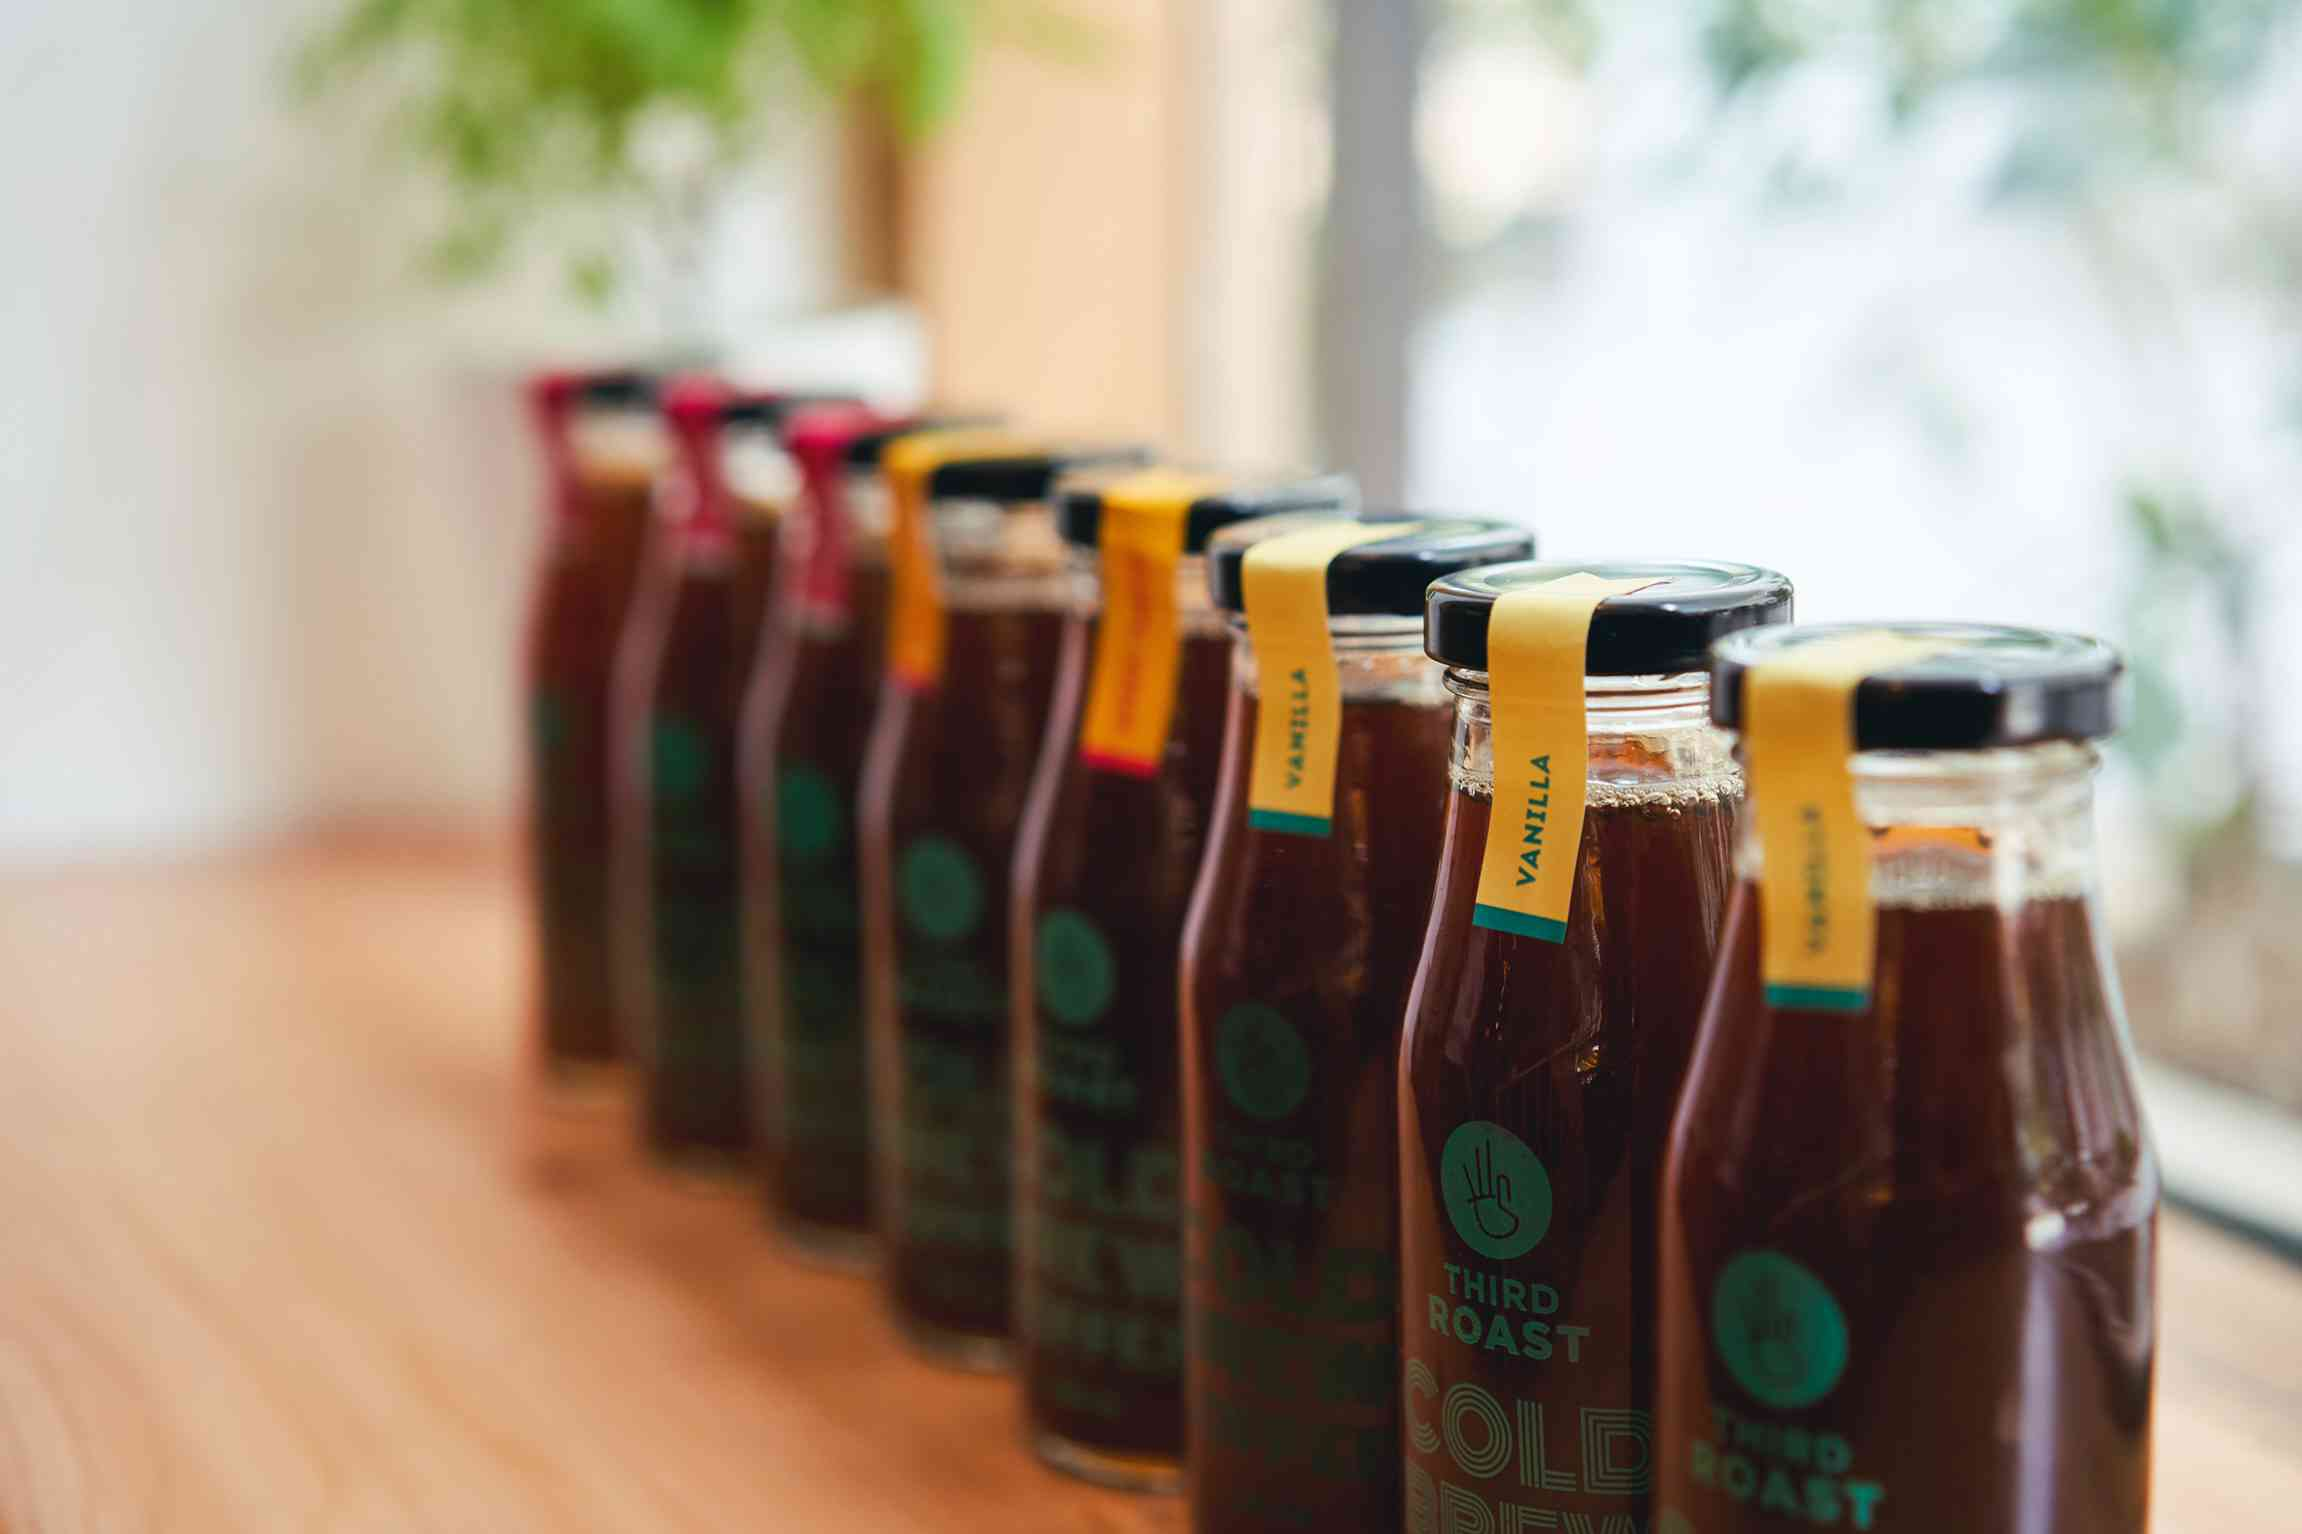 bottles of signature black cold brew coffee from third roast coffee